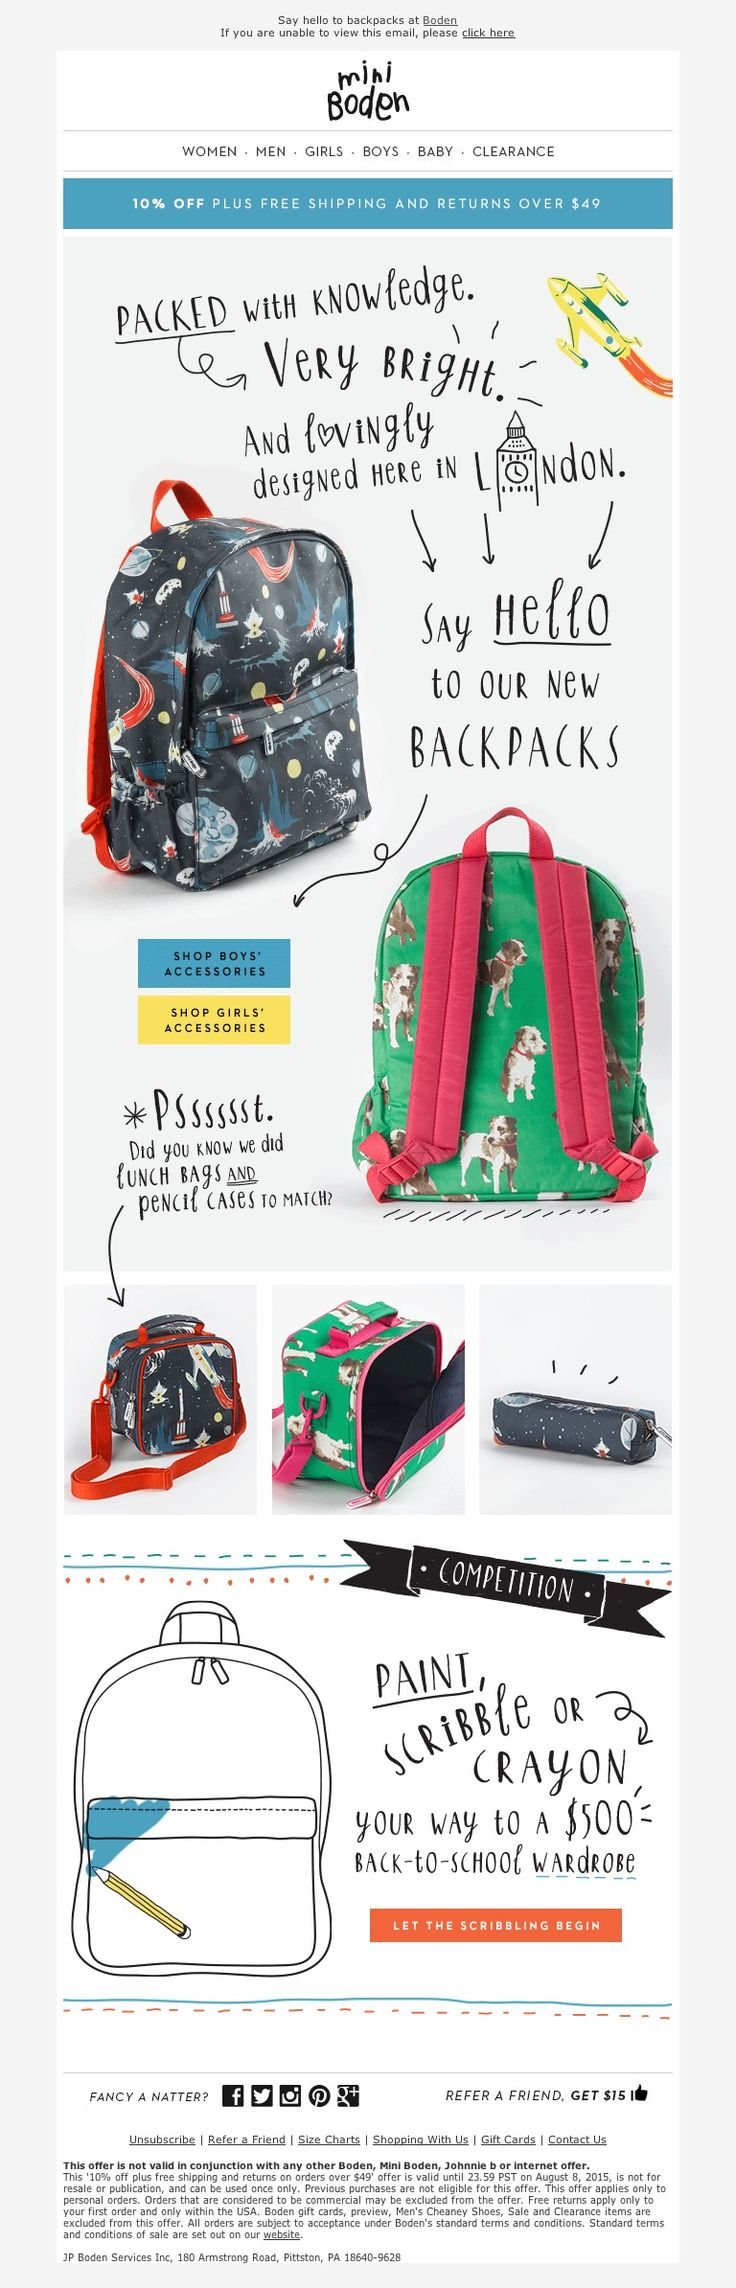 Boden -  7/2015 sl: Backpacks that are IMPOSSIBLE to ignore